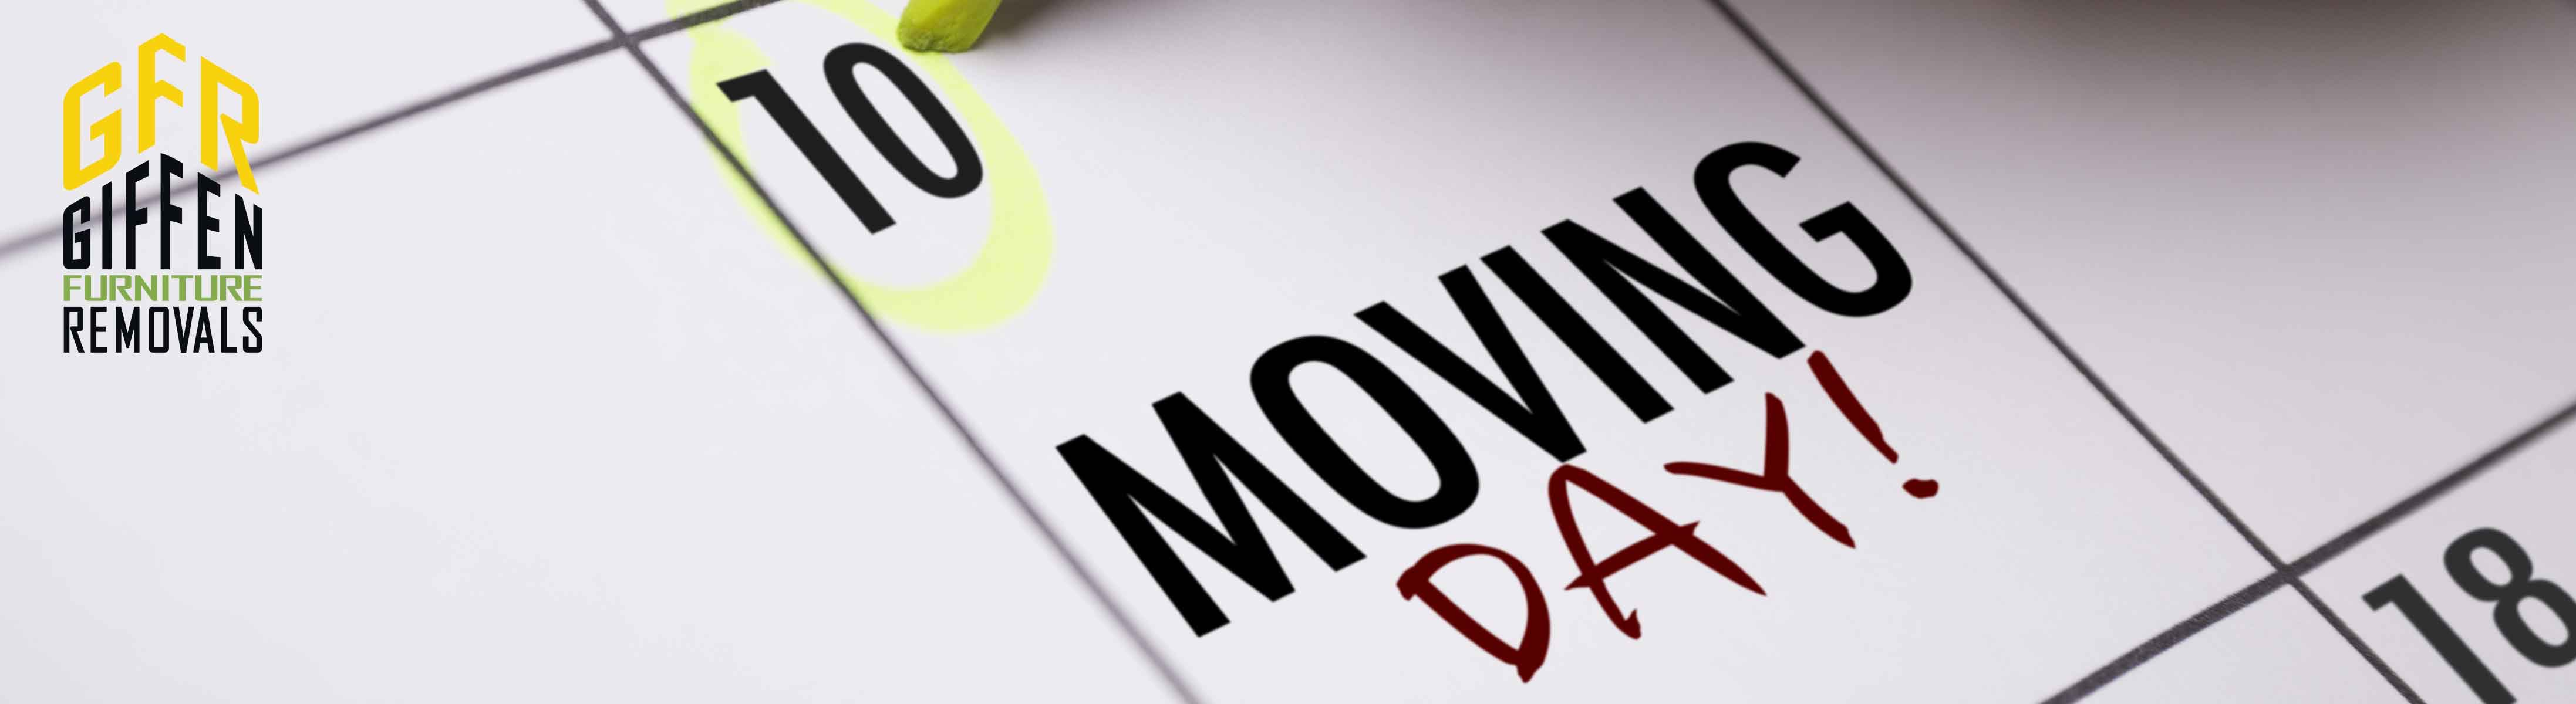 Giffen Furniture Removals How To Save Time & Money When Moving House